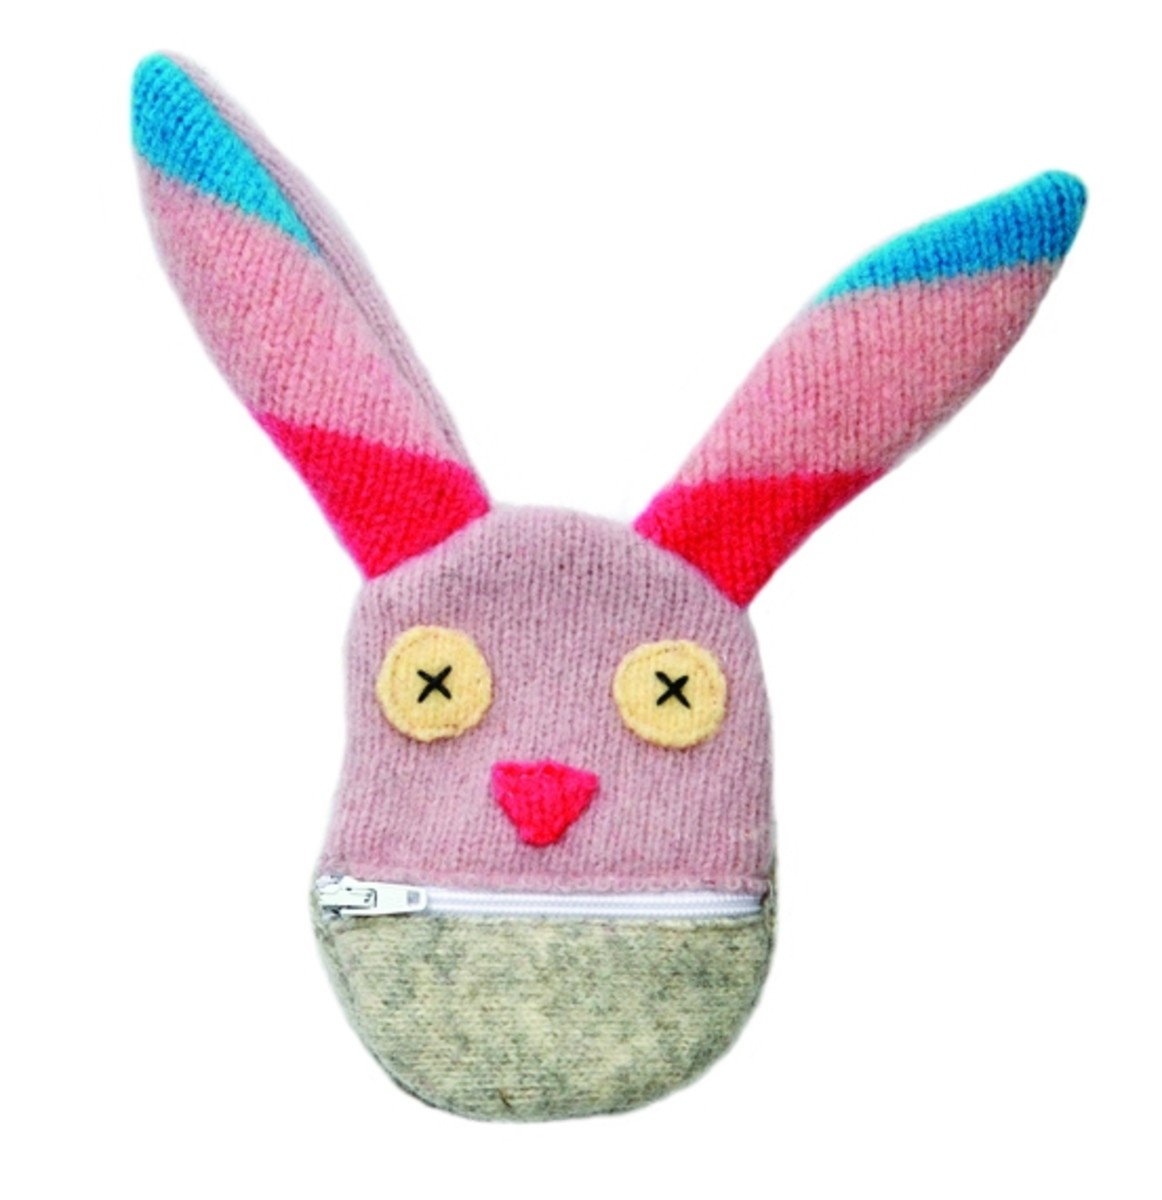 wallet_-bunny-low-res-552x570